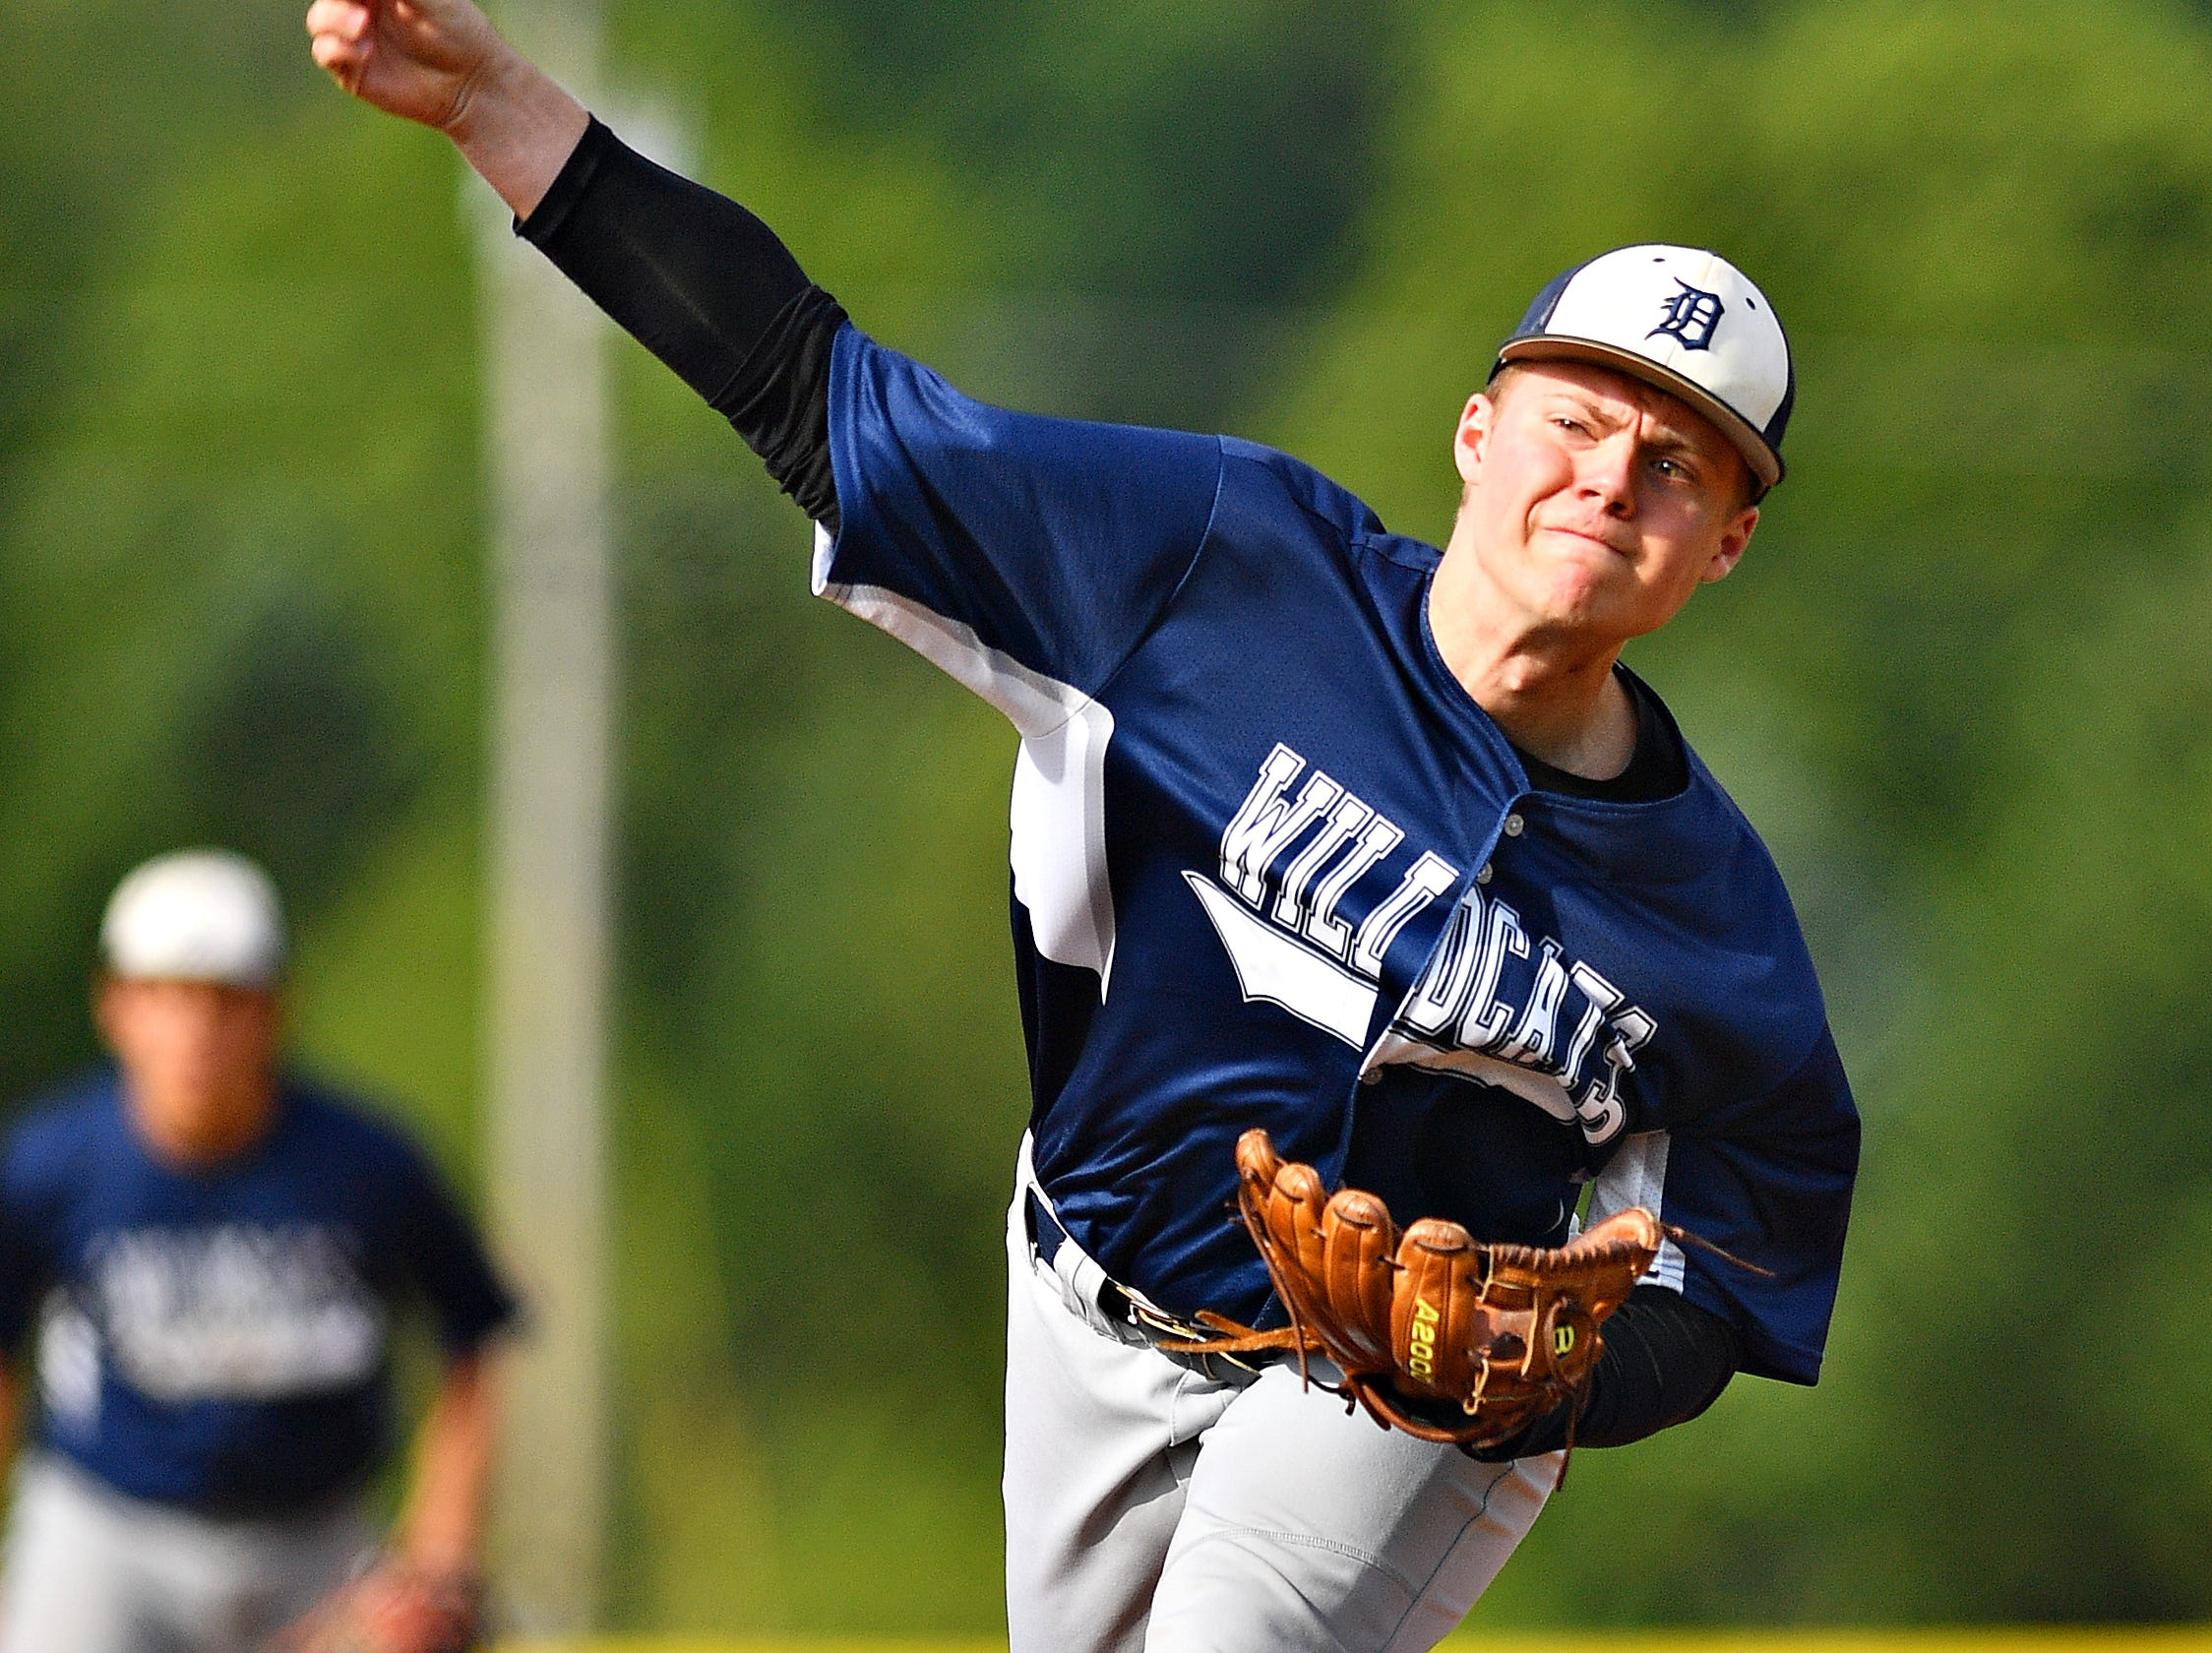 Dallastown's Alex Weakland pitches against  West York during baseball semifinal action at Spring Grove Area High School in Jackson Township, Wednesday, May 15, 2019. Dallastown would win the game 12-0. Dawn J. Sagert photo